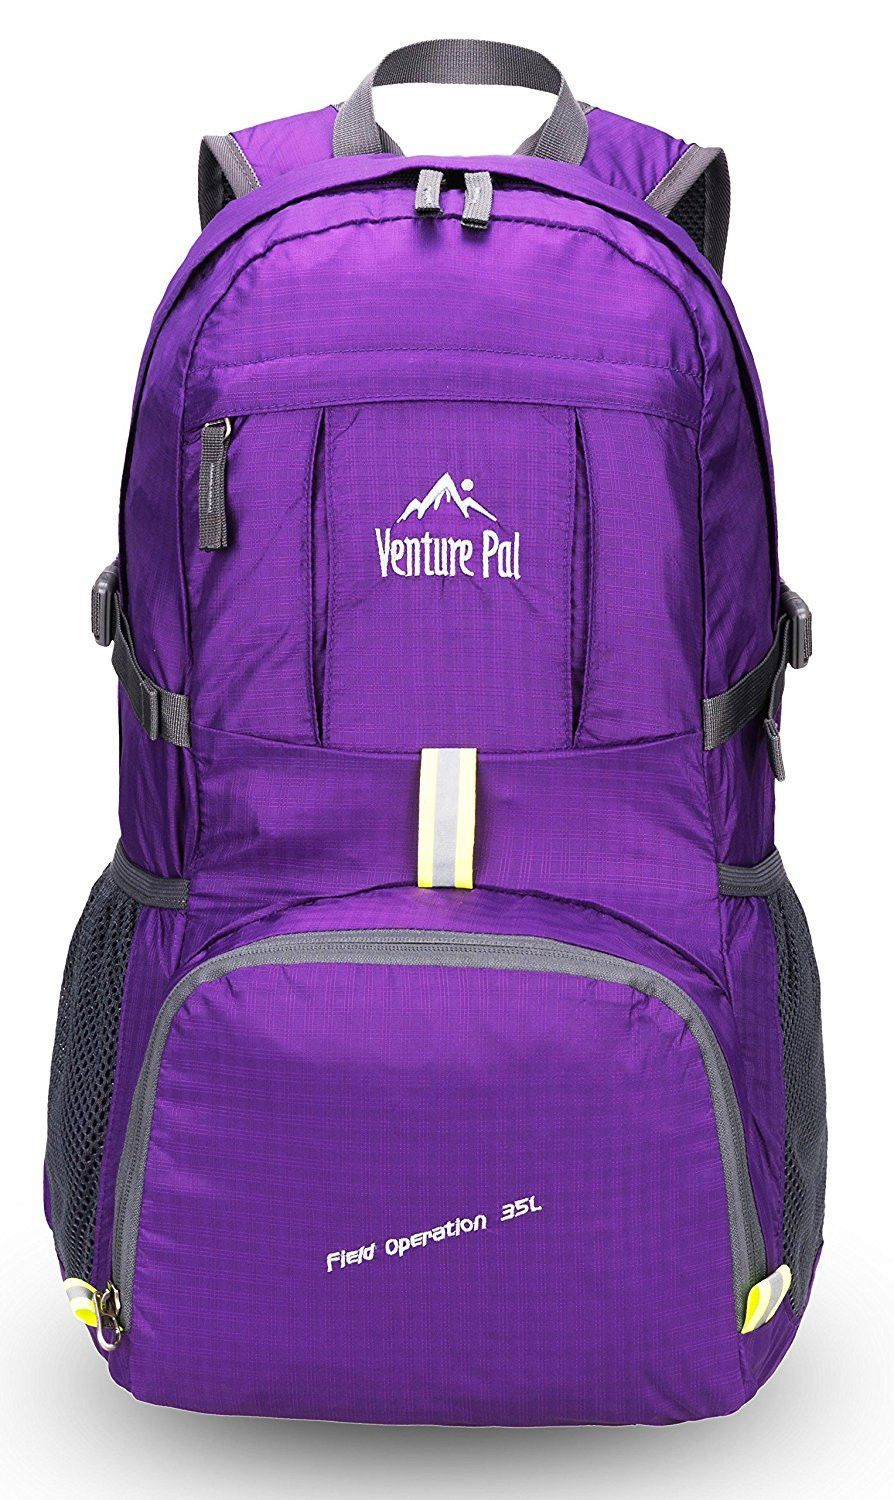 Venture Pal Lightweight Packable Durable Travel Hiking Backpack Daypack  Purple 5ee1a19b306c5